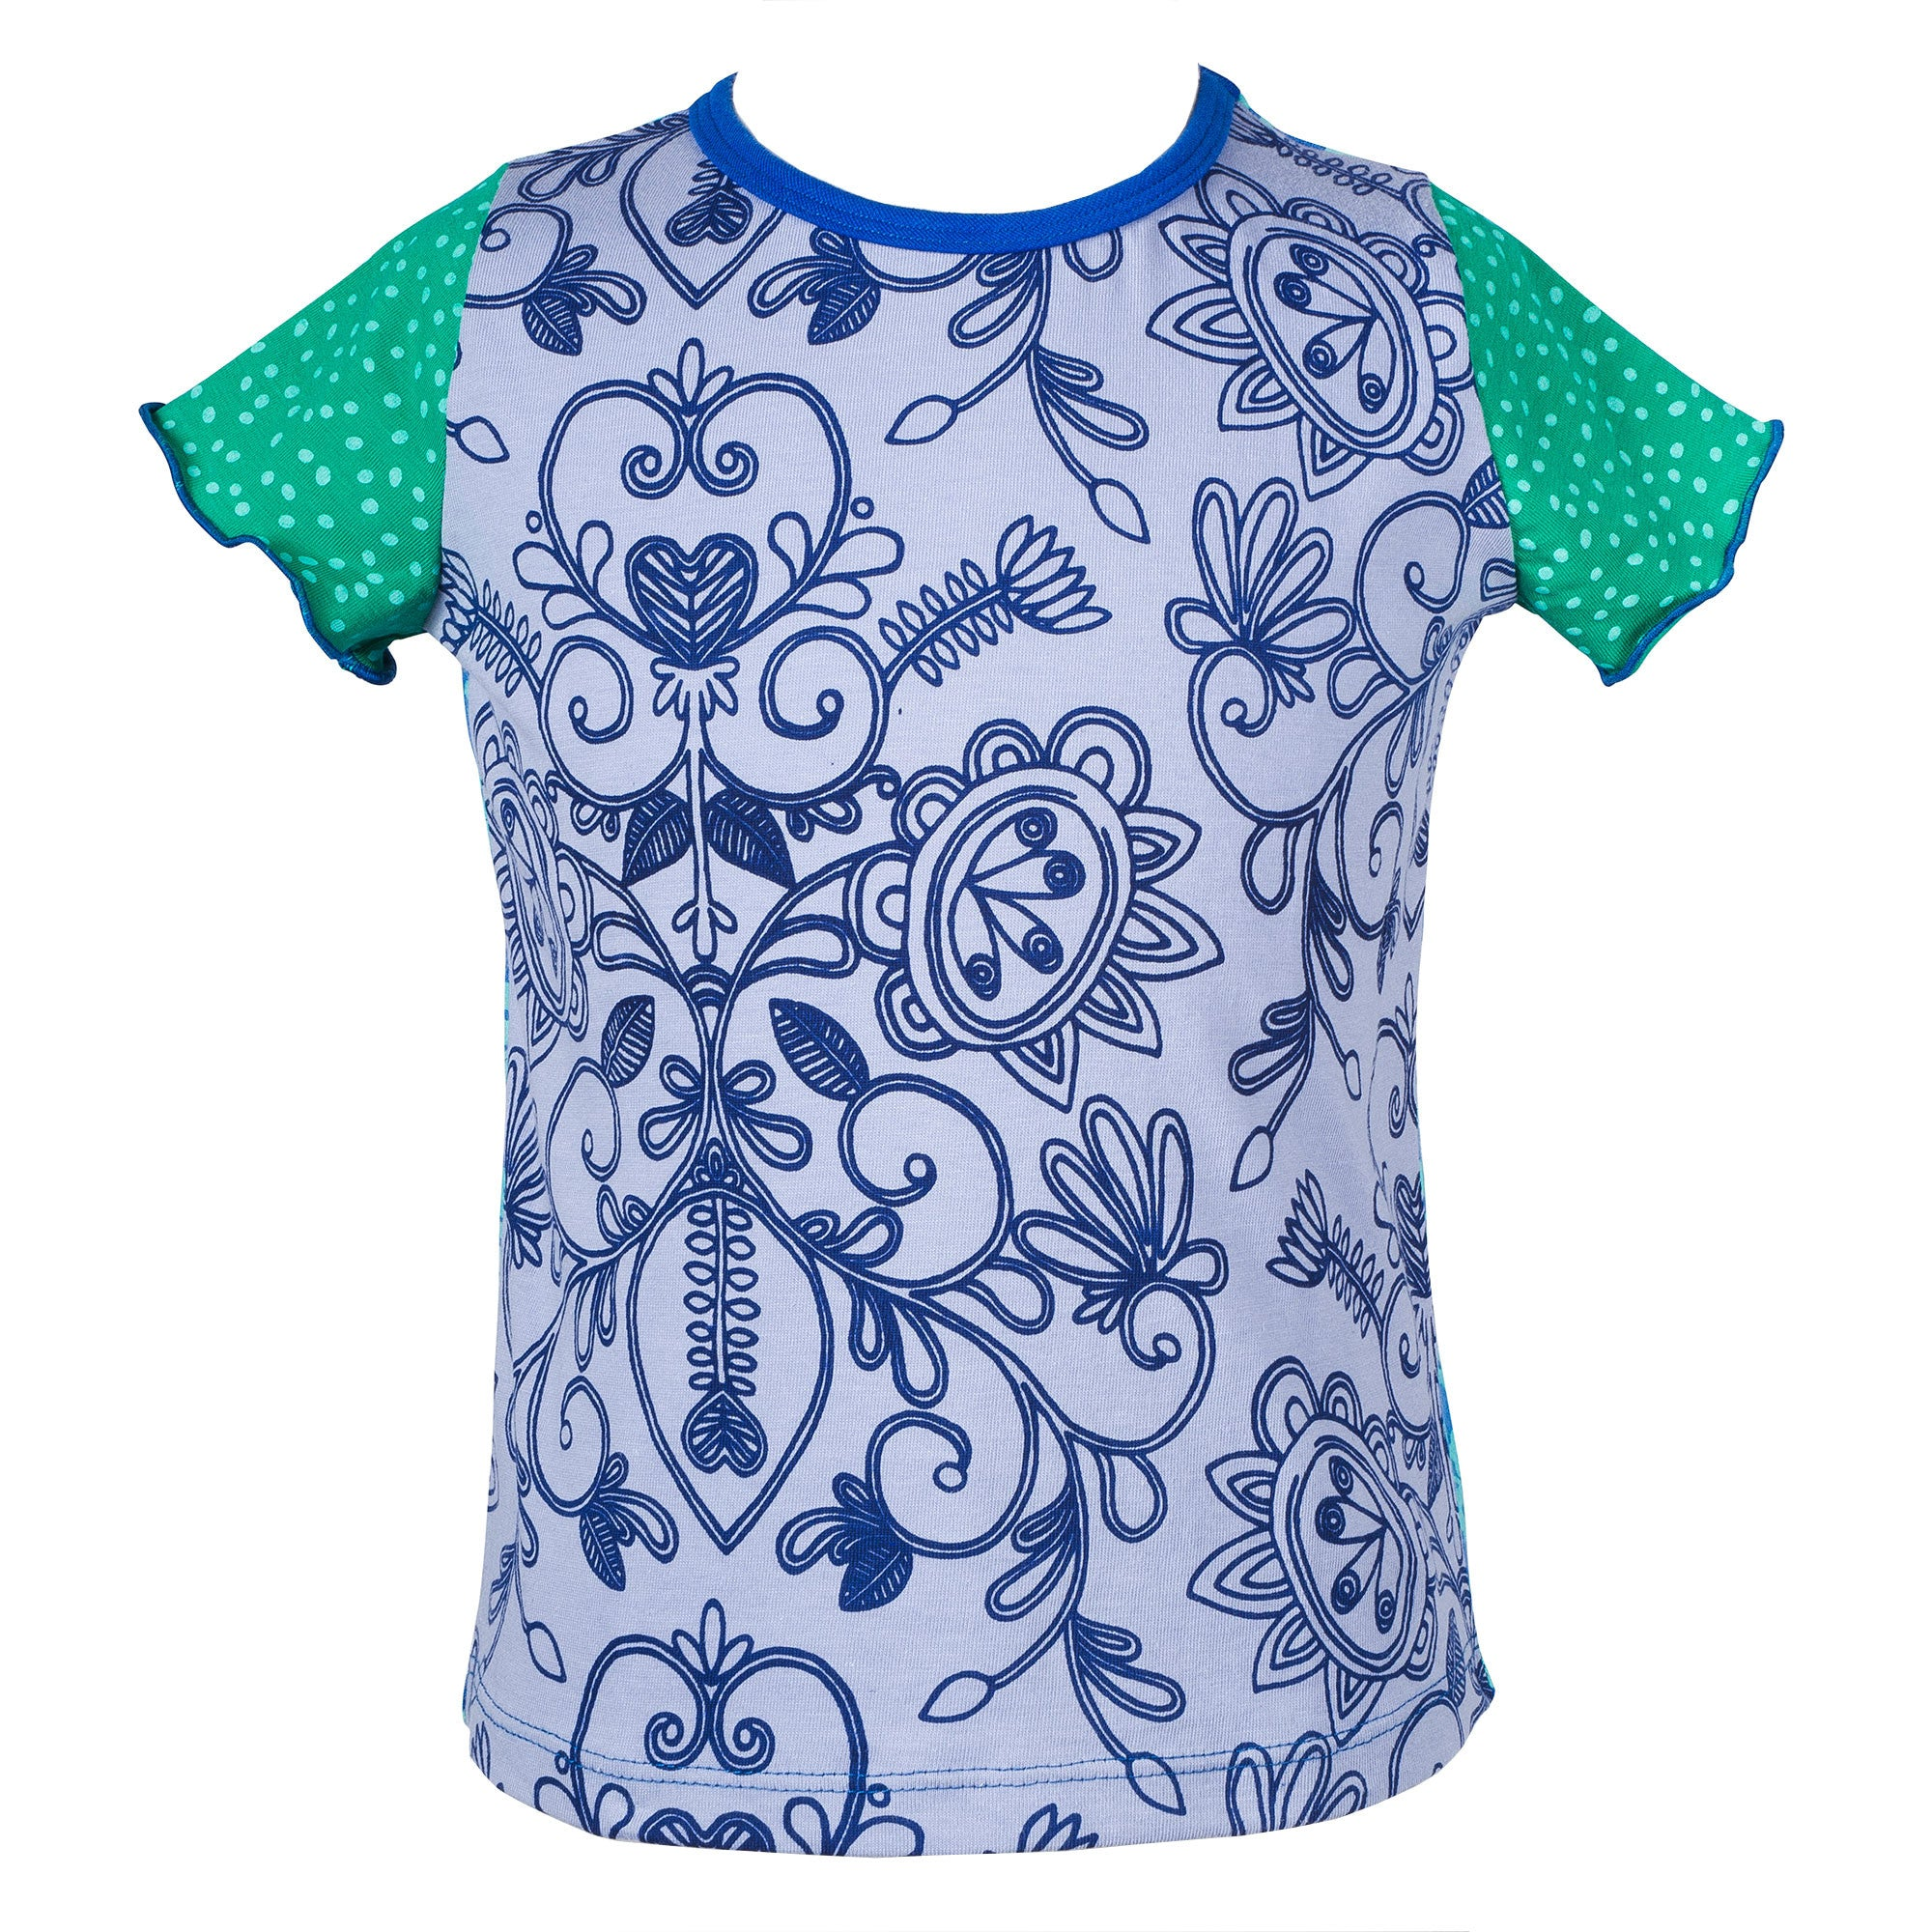 Blue filigree caterpillar top